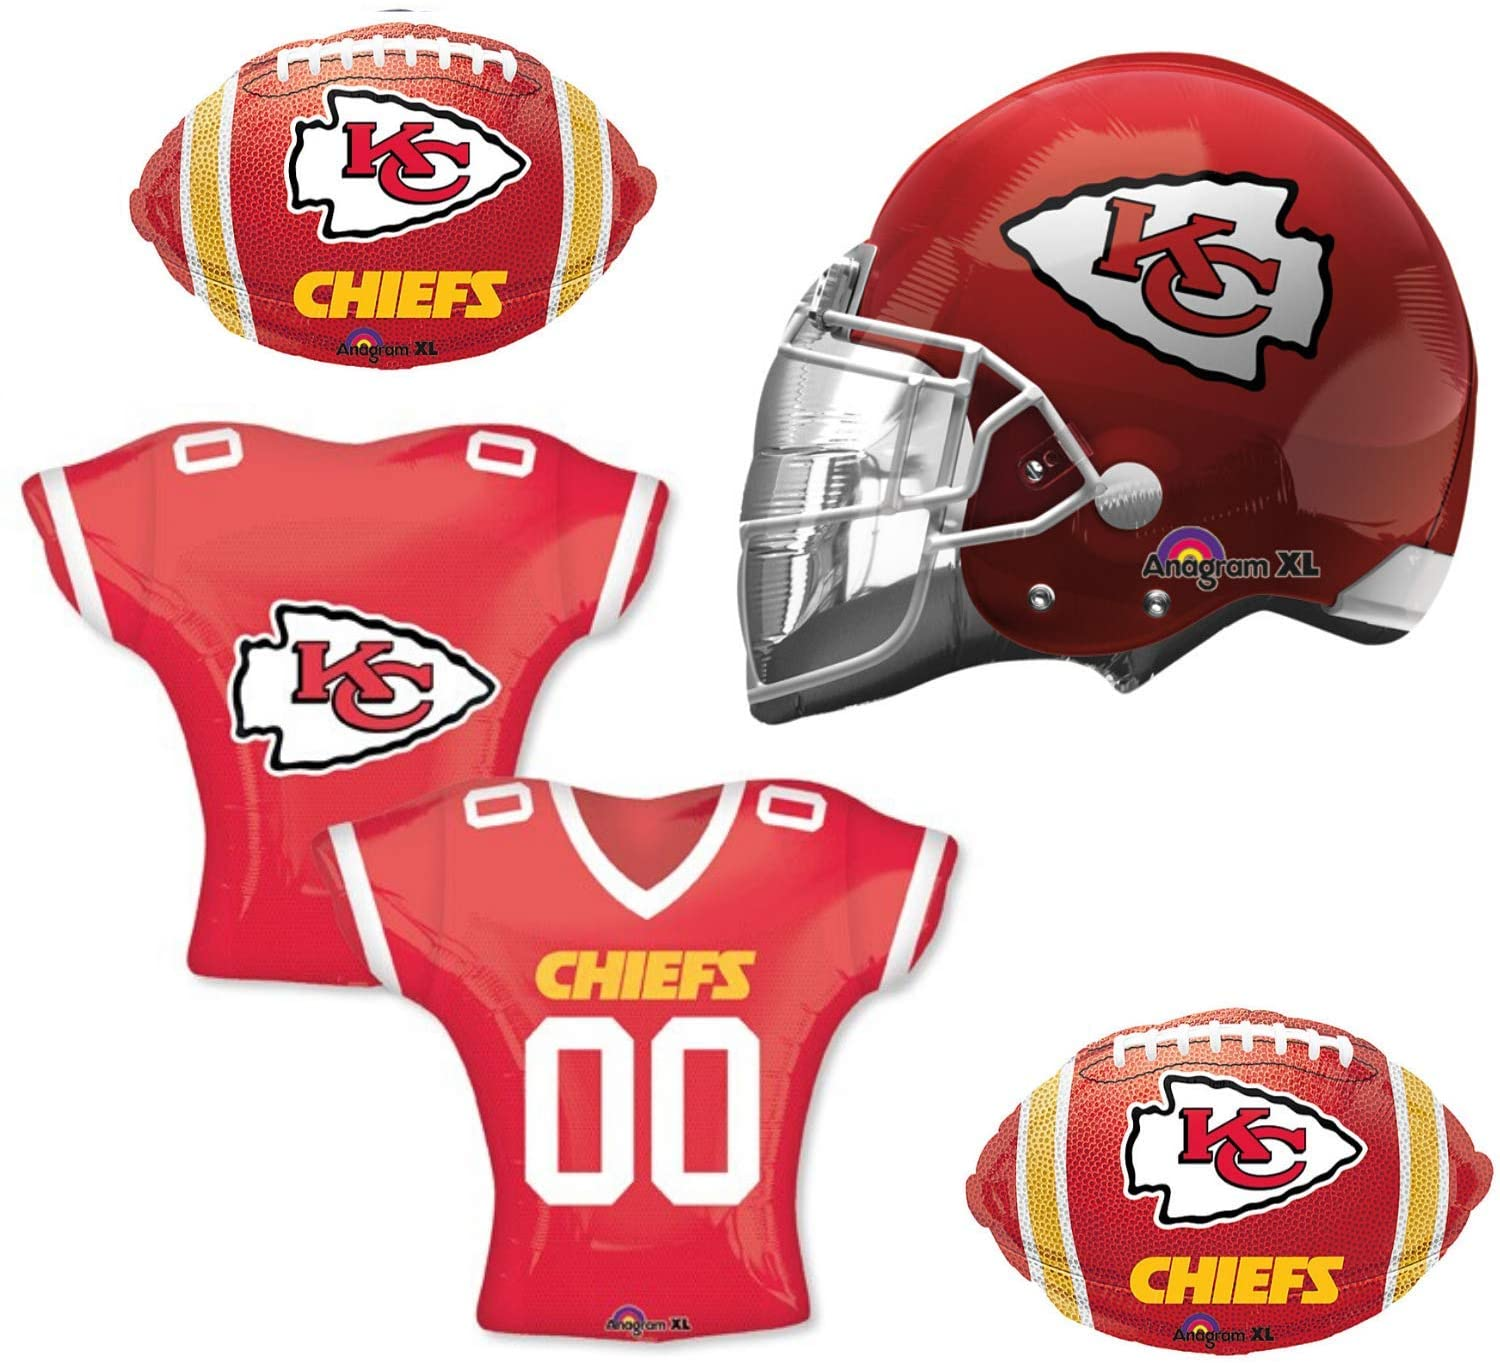 Chiefs Football Party Balloon Decorations - 4 Pack Supply Set For A Kansas City Chiefs NFL Sunday Football Fan. Celebrate The Super Bowl With A Balloon Bouquet, Happy Birthday Party, Or As A Special Event Banner Display